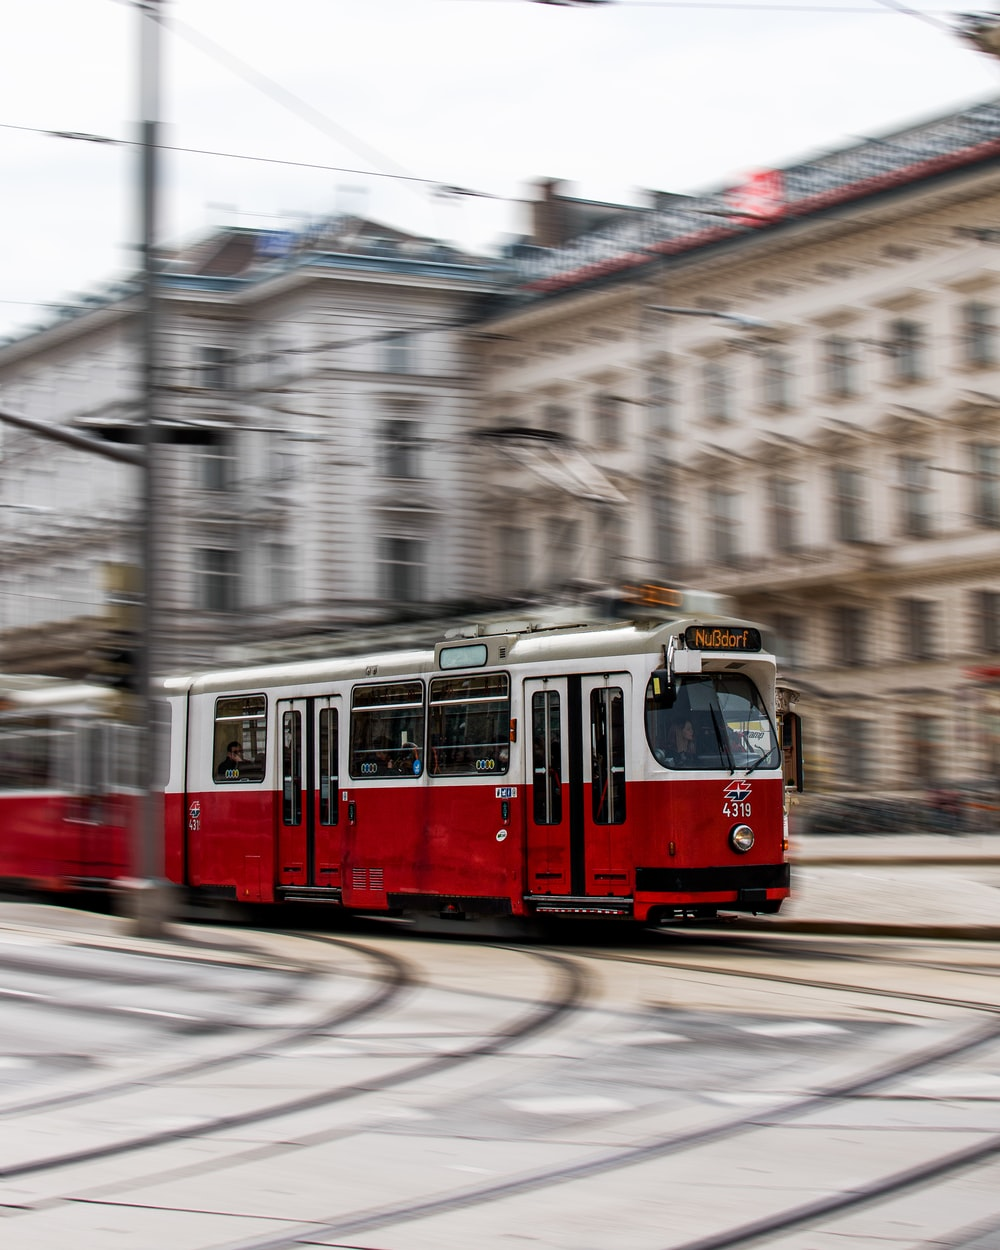 red tram on road near building during daytime